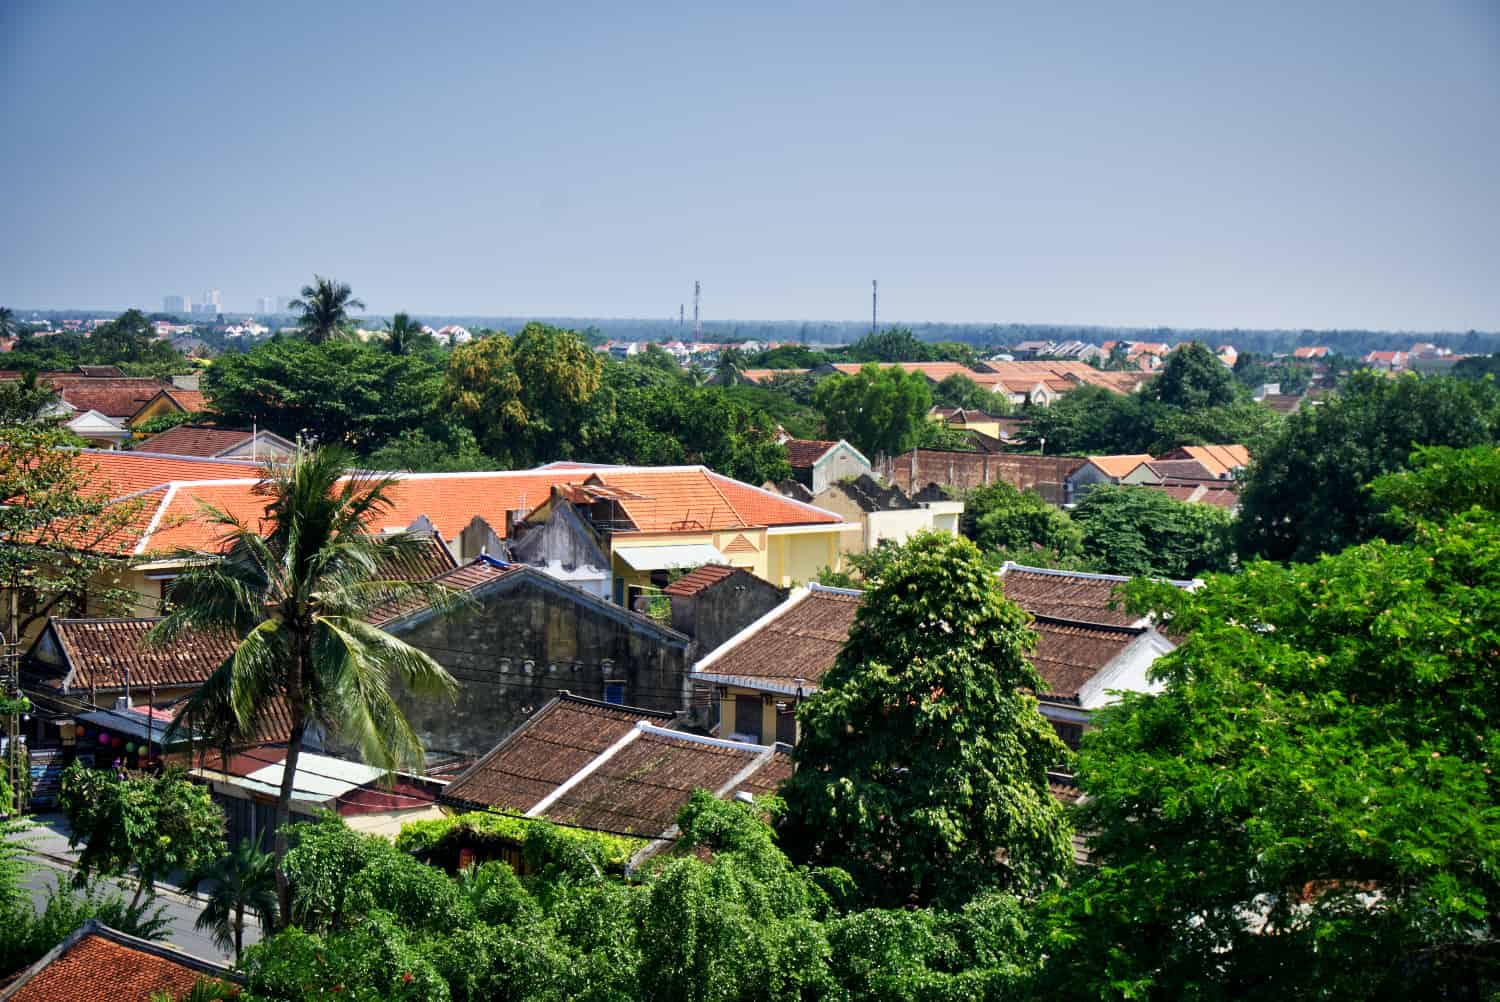 The Hoi An Museum